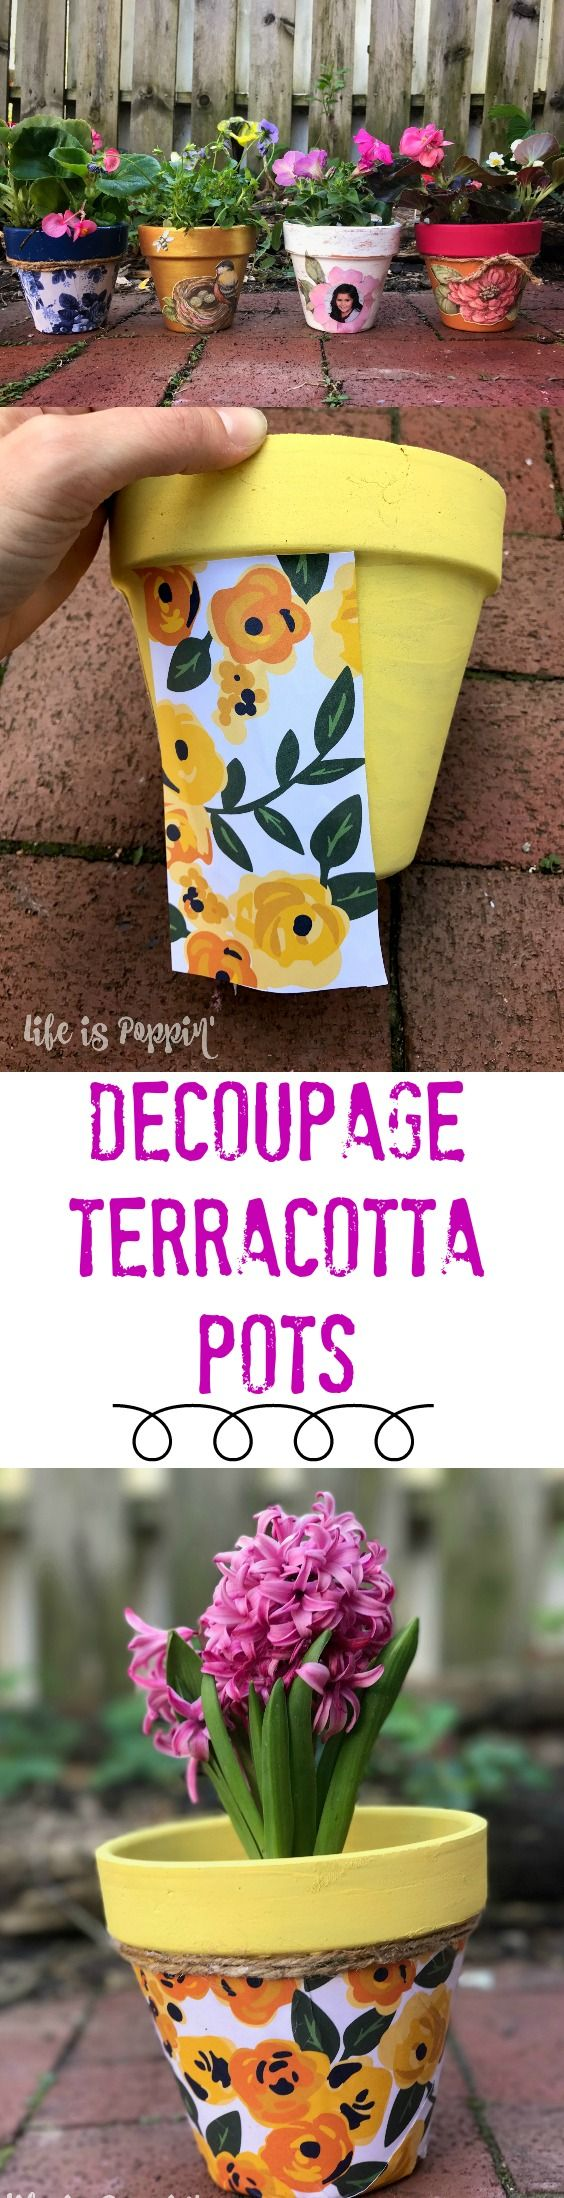 A quick tutorial of how to make these easy and inexpensive decoupage terracotta pots just in time for Mother's Day! Make Mom